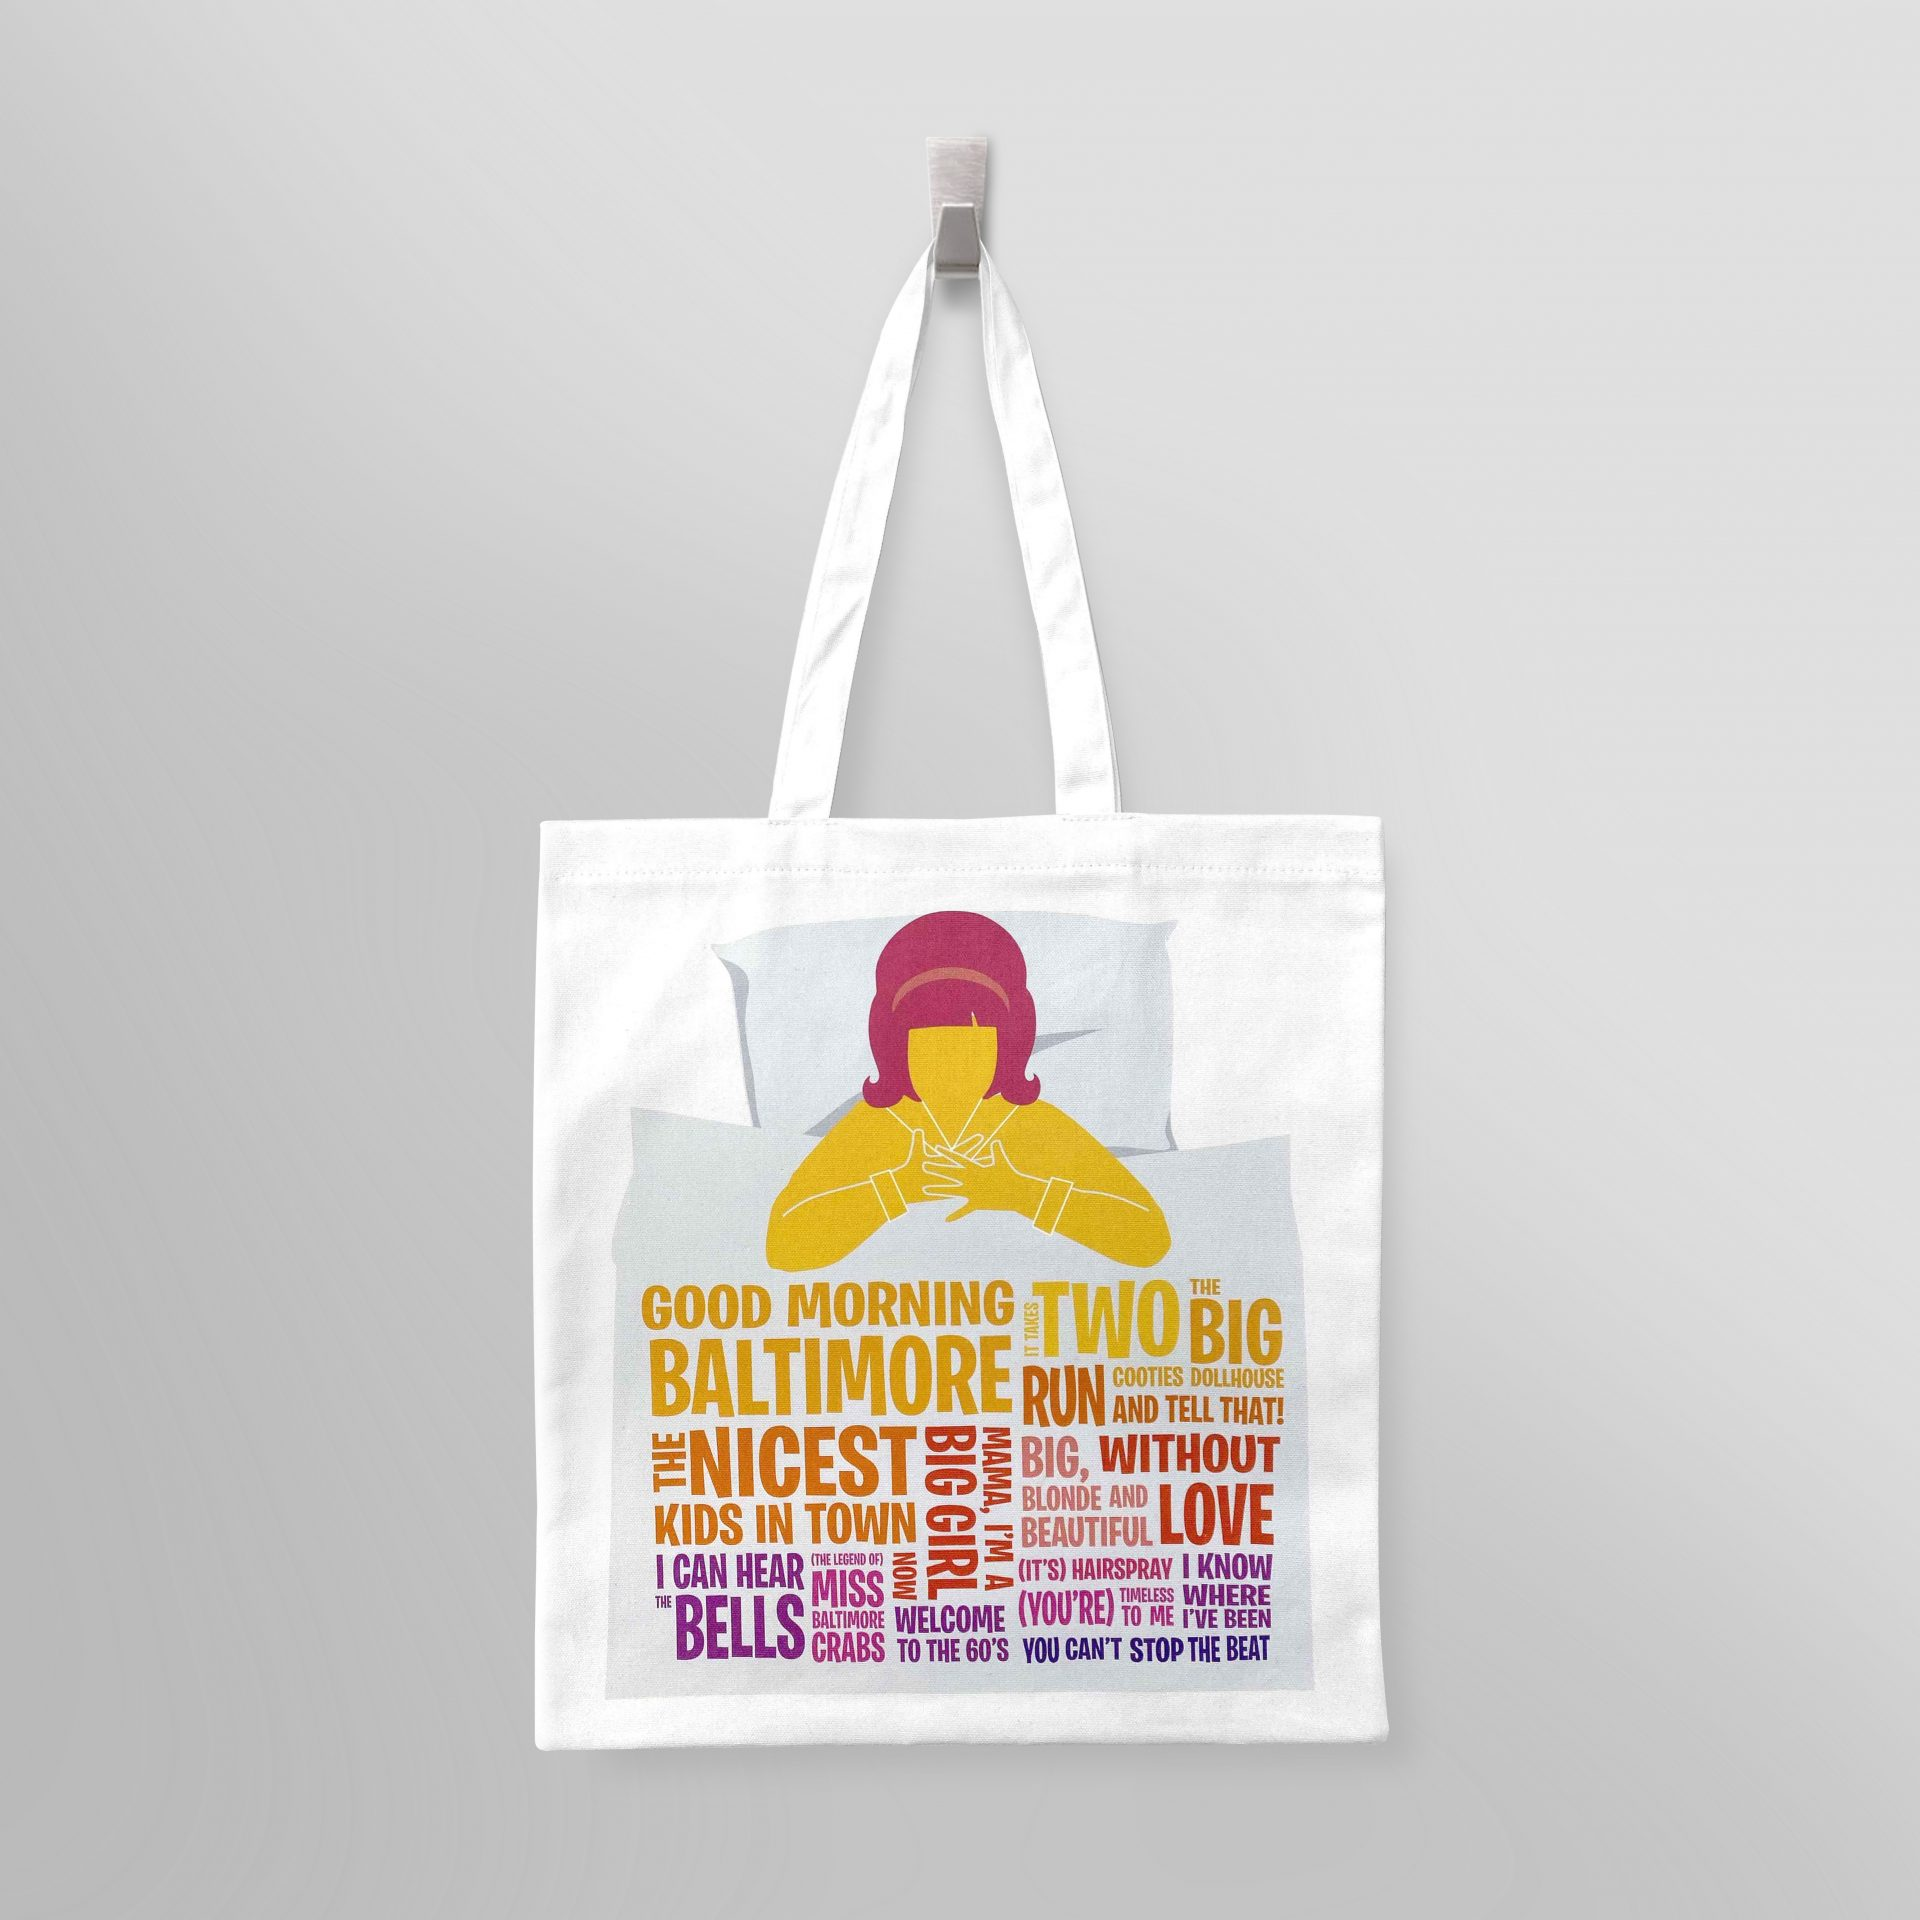 Printed tote bags for theatres and attractions by Paul Bristow